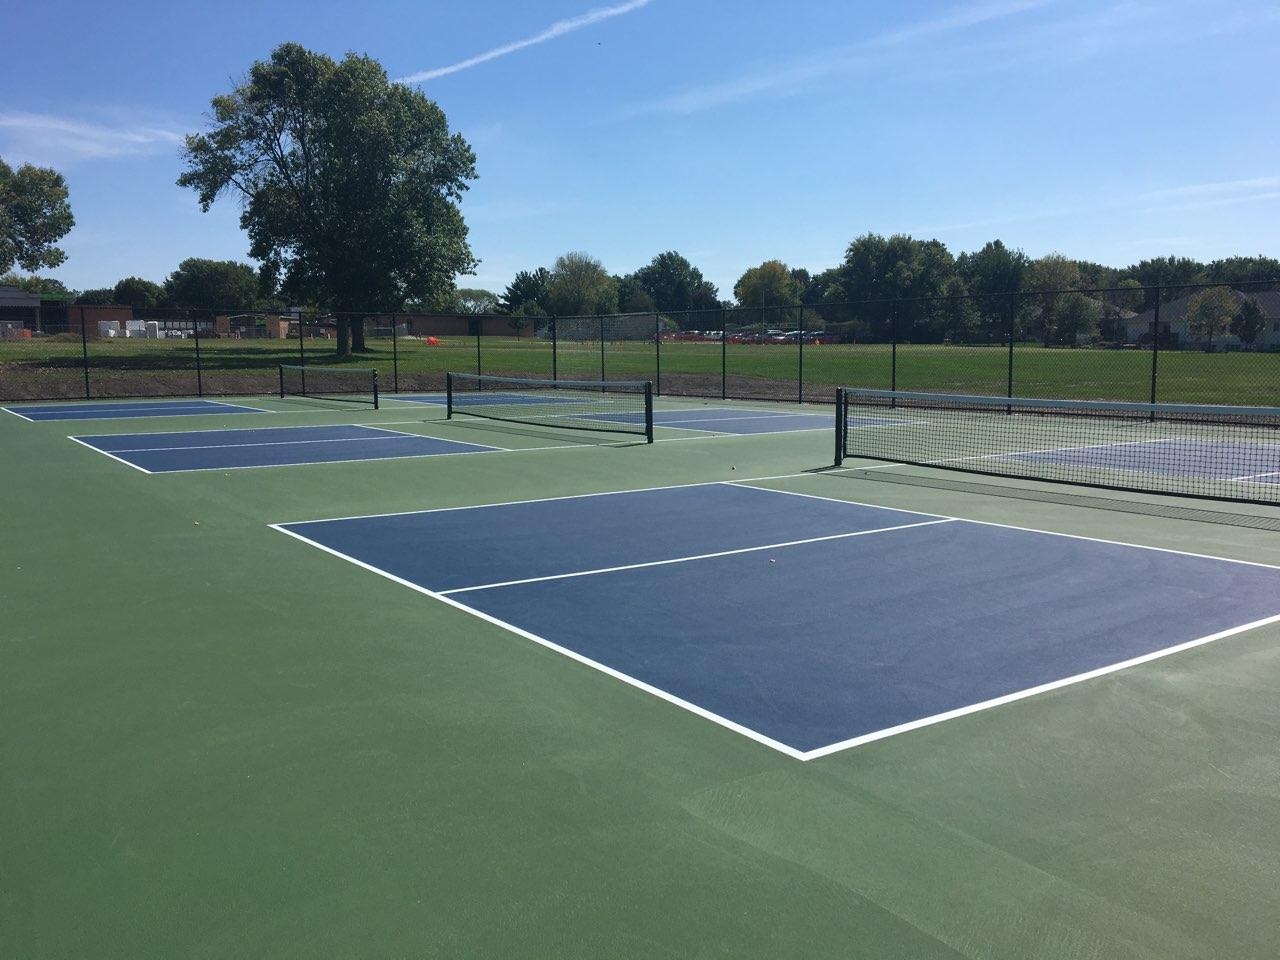 Orchard Hill Pickleball Court